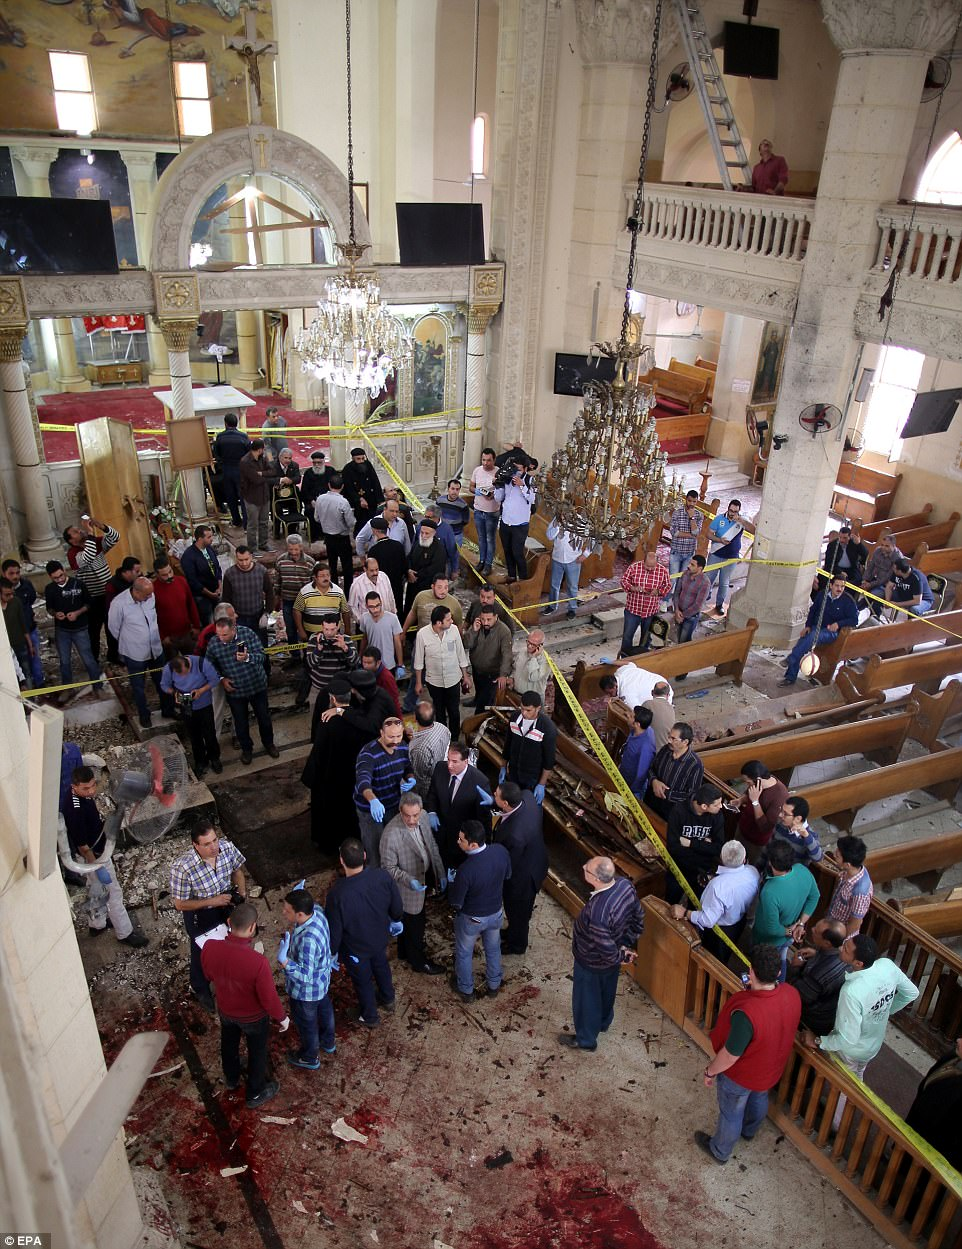 Nearly four dozen people were killed after two explosions targeting Coptic Christians in Tantra and Alexandria today. Pictured, the blood covered floor in St. George's Church in Tanta